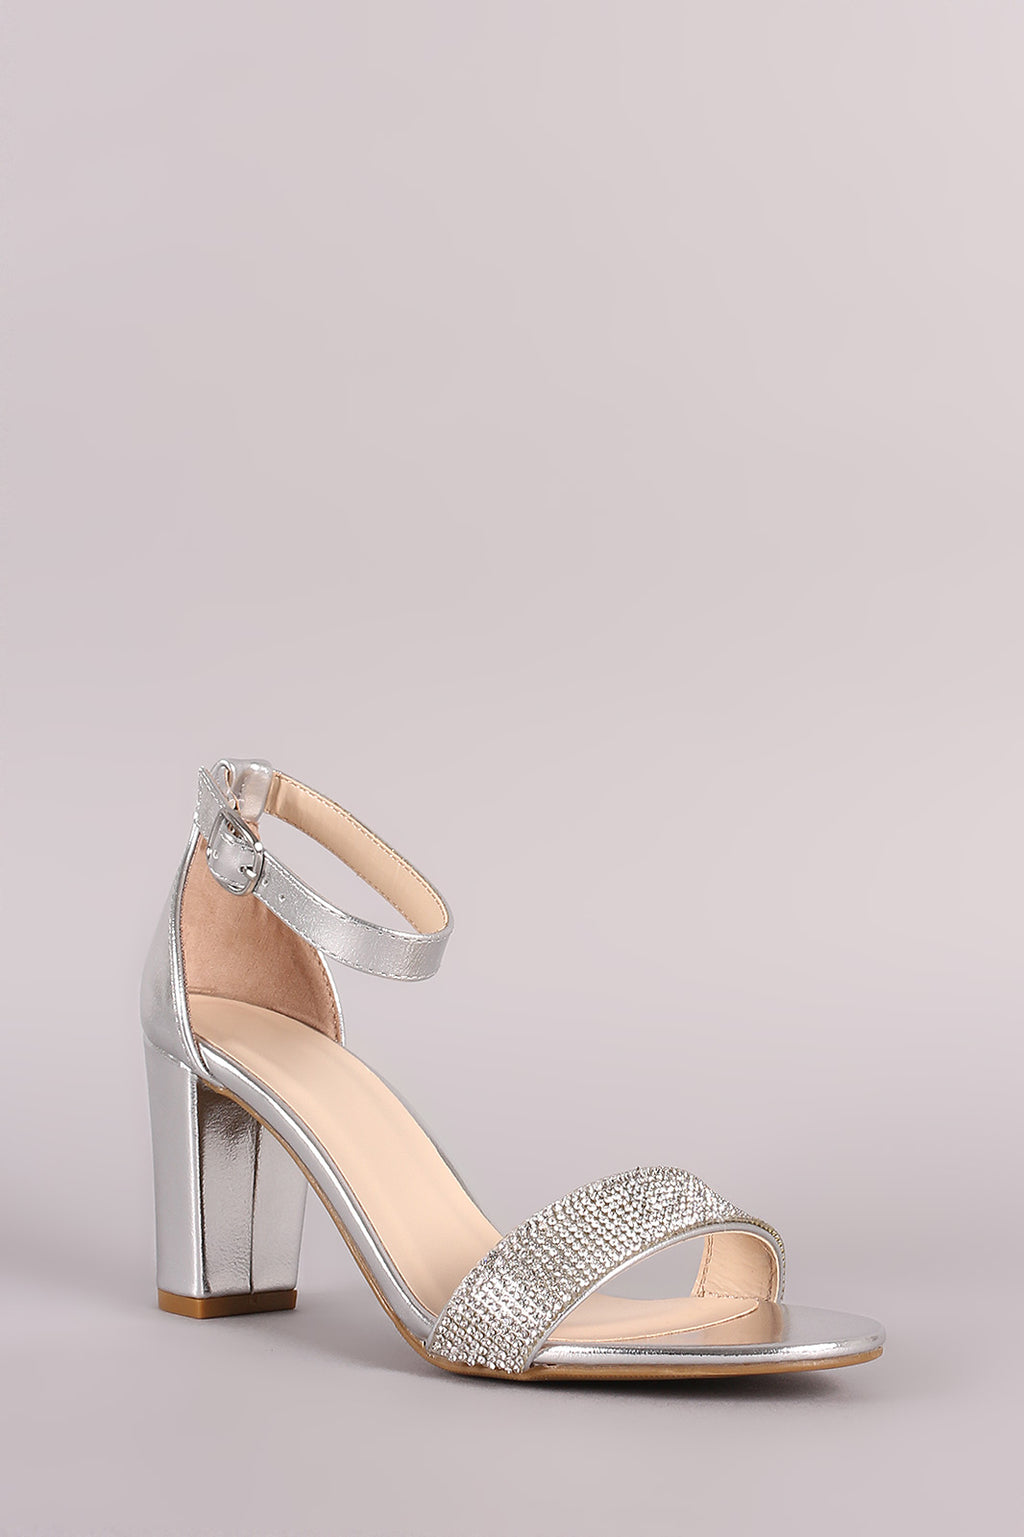 Bamboo Striking-14 Silver Open Toe Block Heel with Ankle Strap